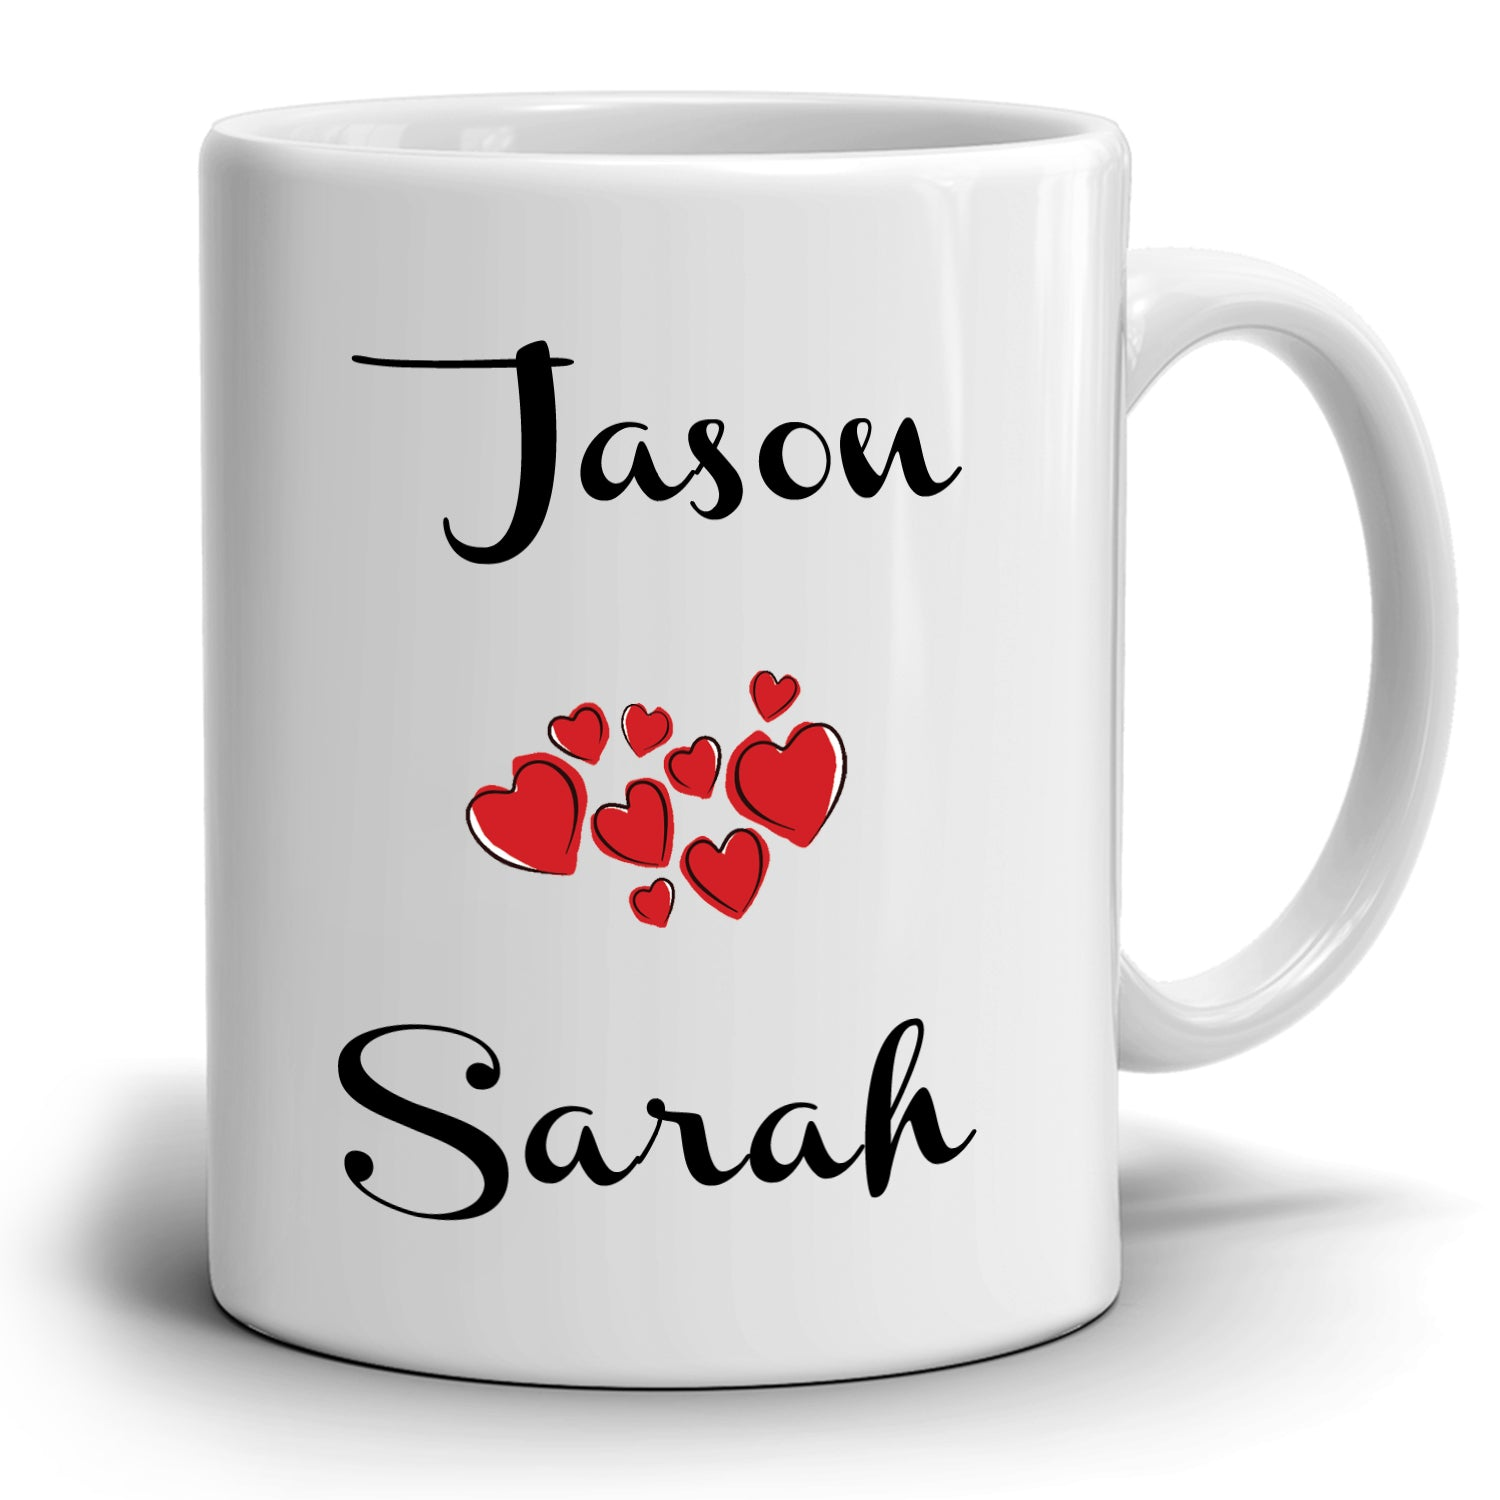 Romantic Wedding Anniversary Gift Mug For Couple, Printed